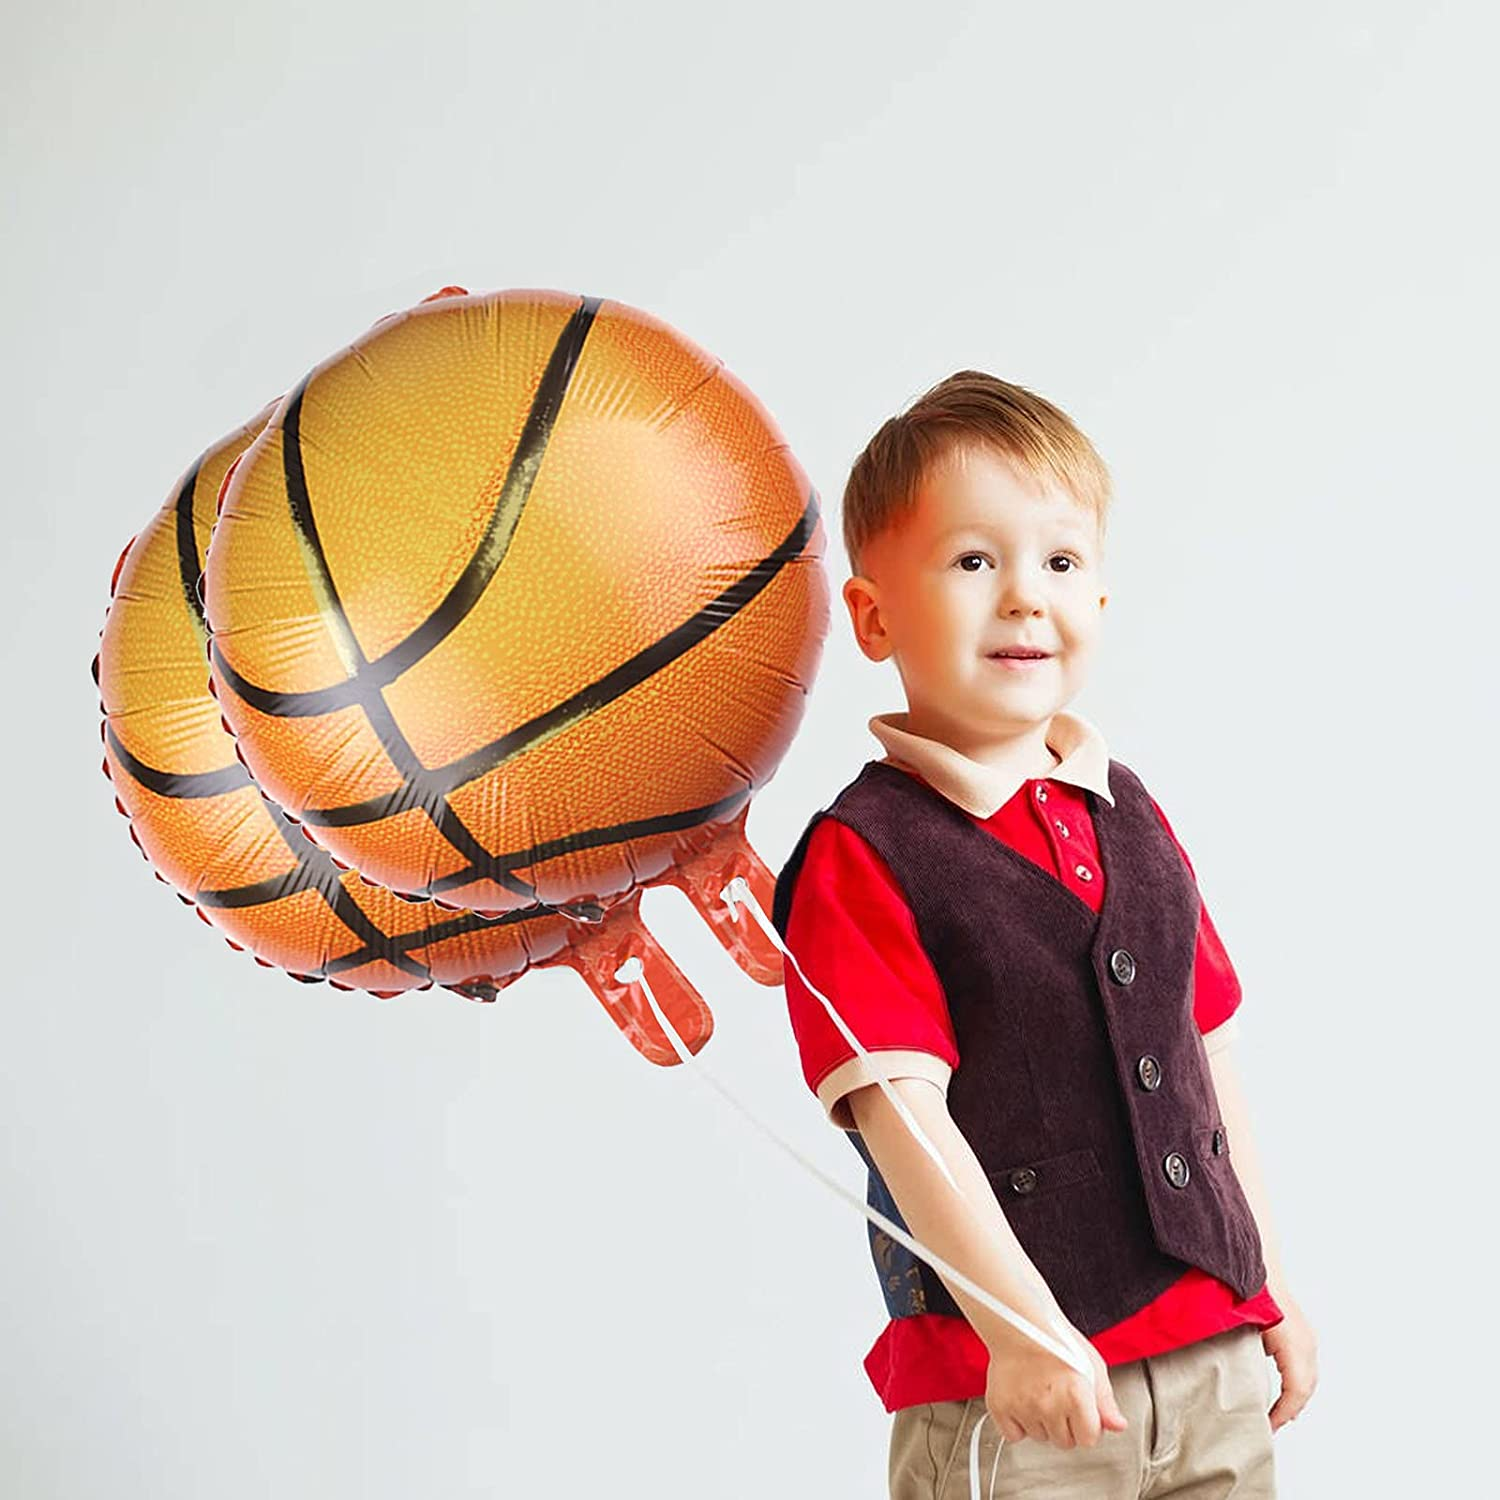 HaiMay 20 Pieces Basketball Balloons Foil Mylar Basketball Balloons for Baby Shower Birthday Party Sports Themed Party Decor Supplies 18 Inch